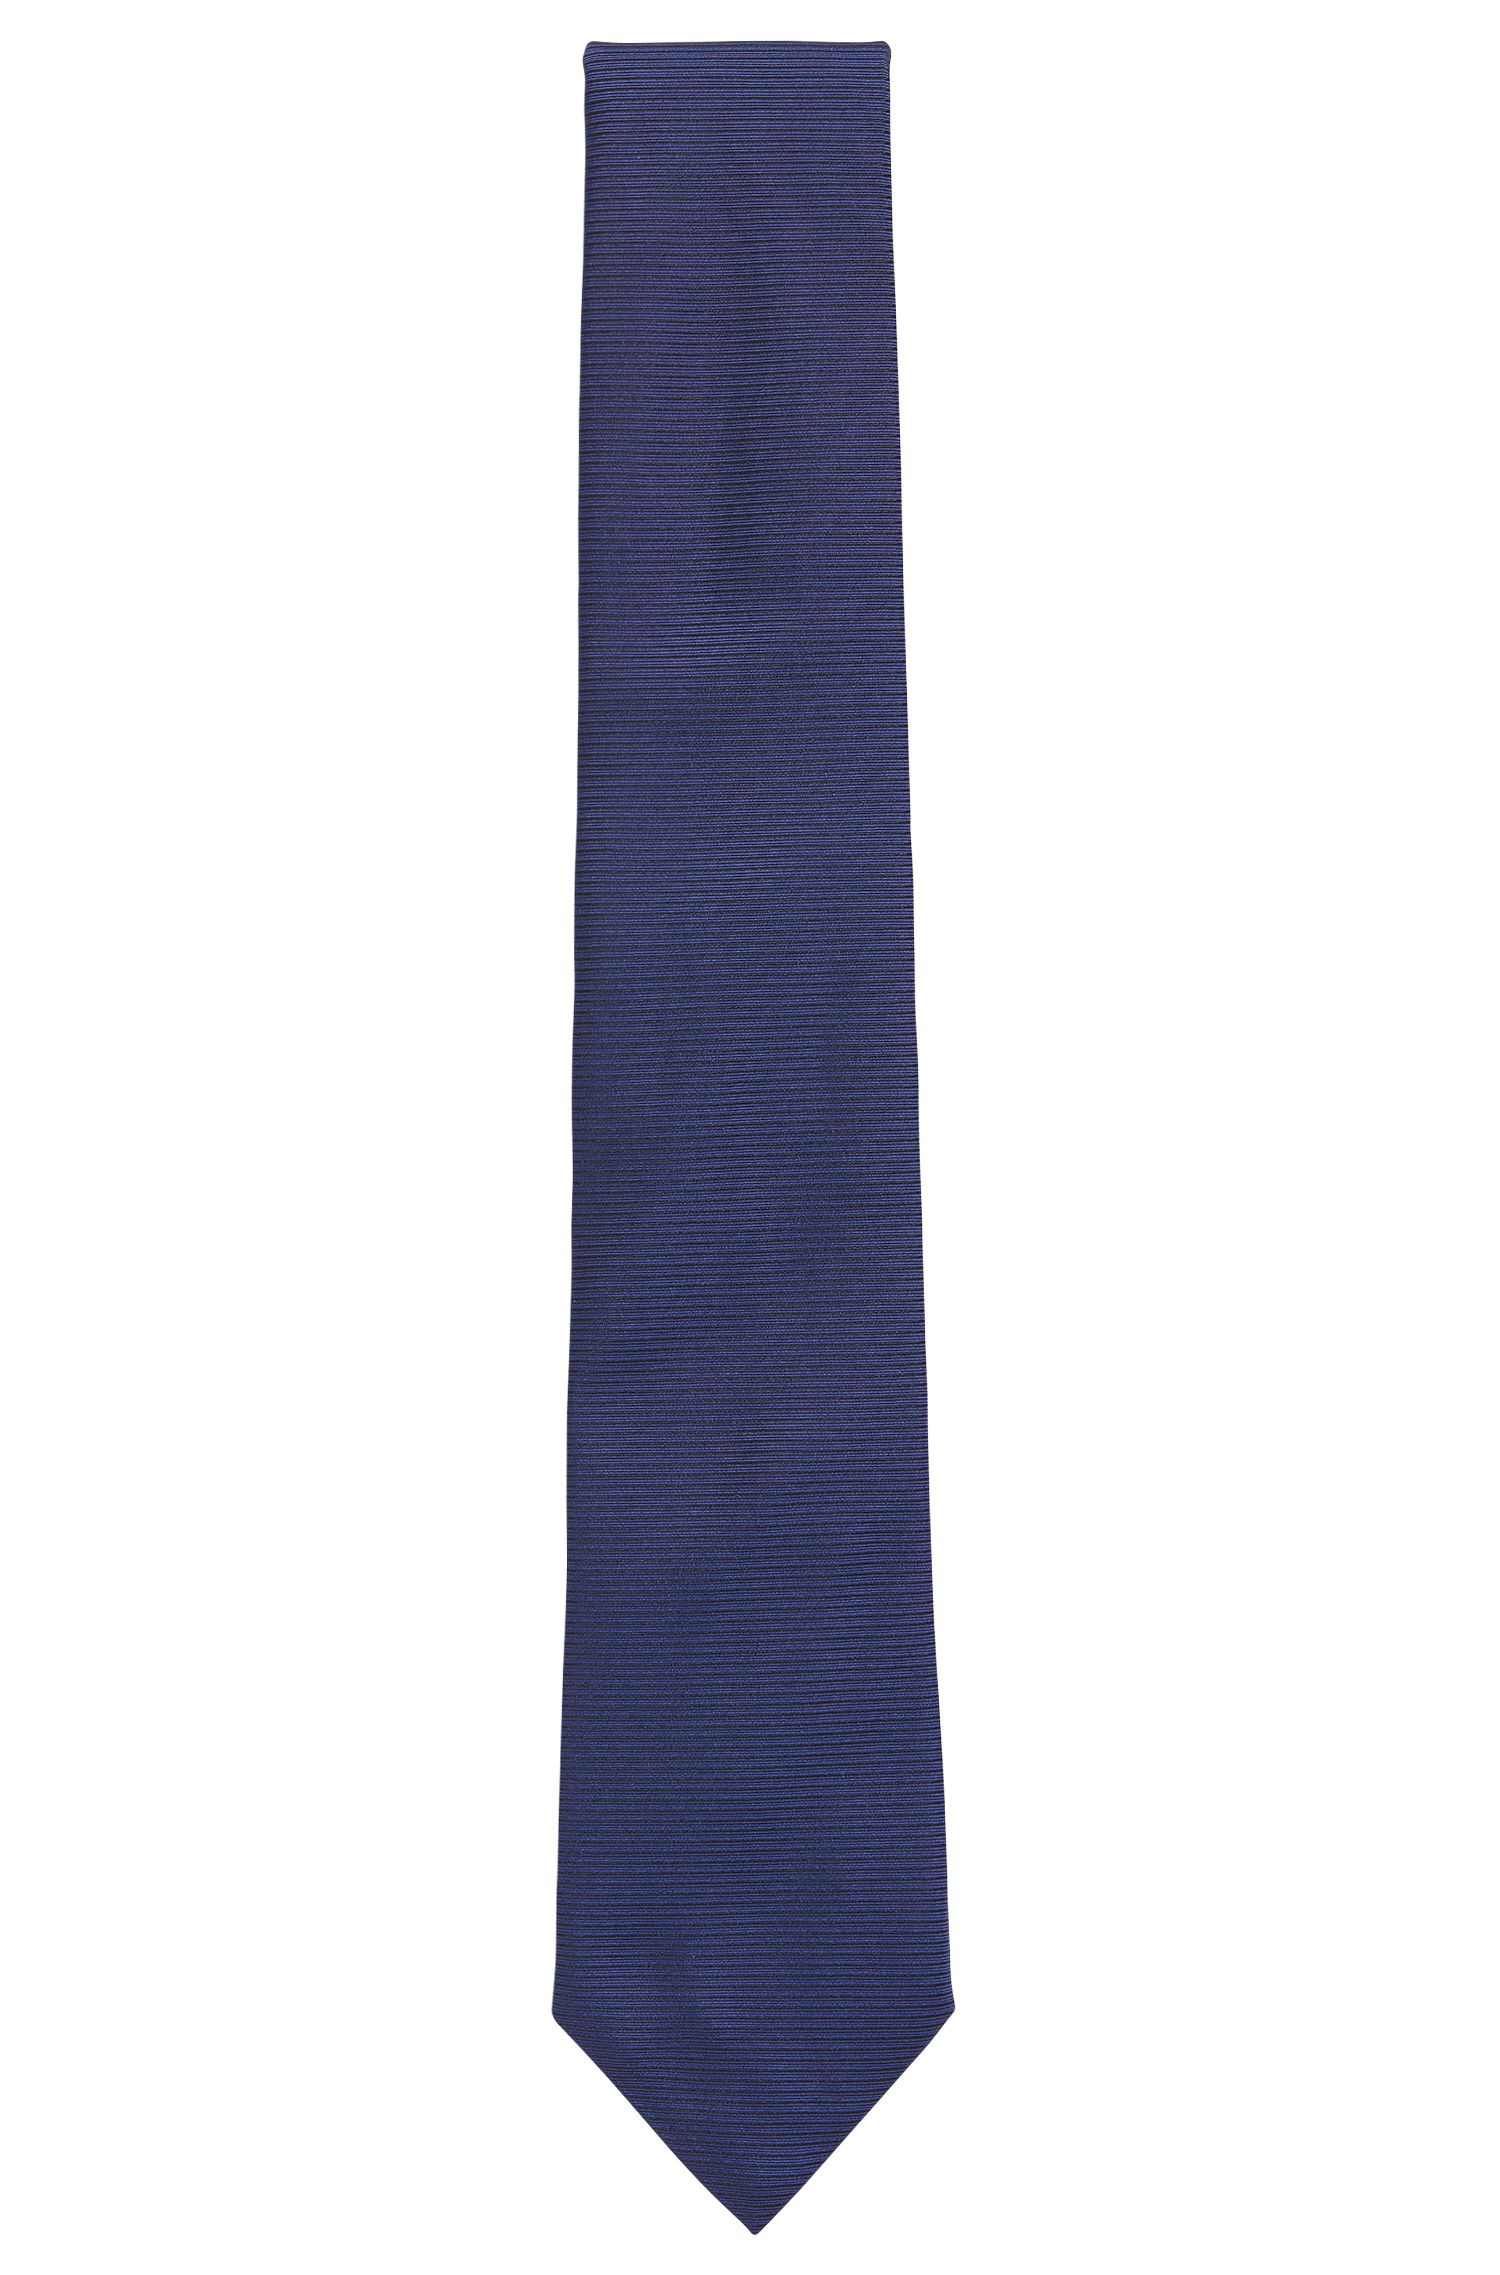 Striped Italian Silk Tie, Turquoise